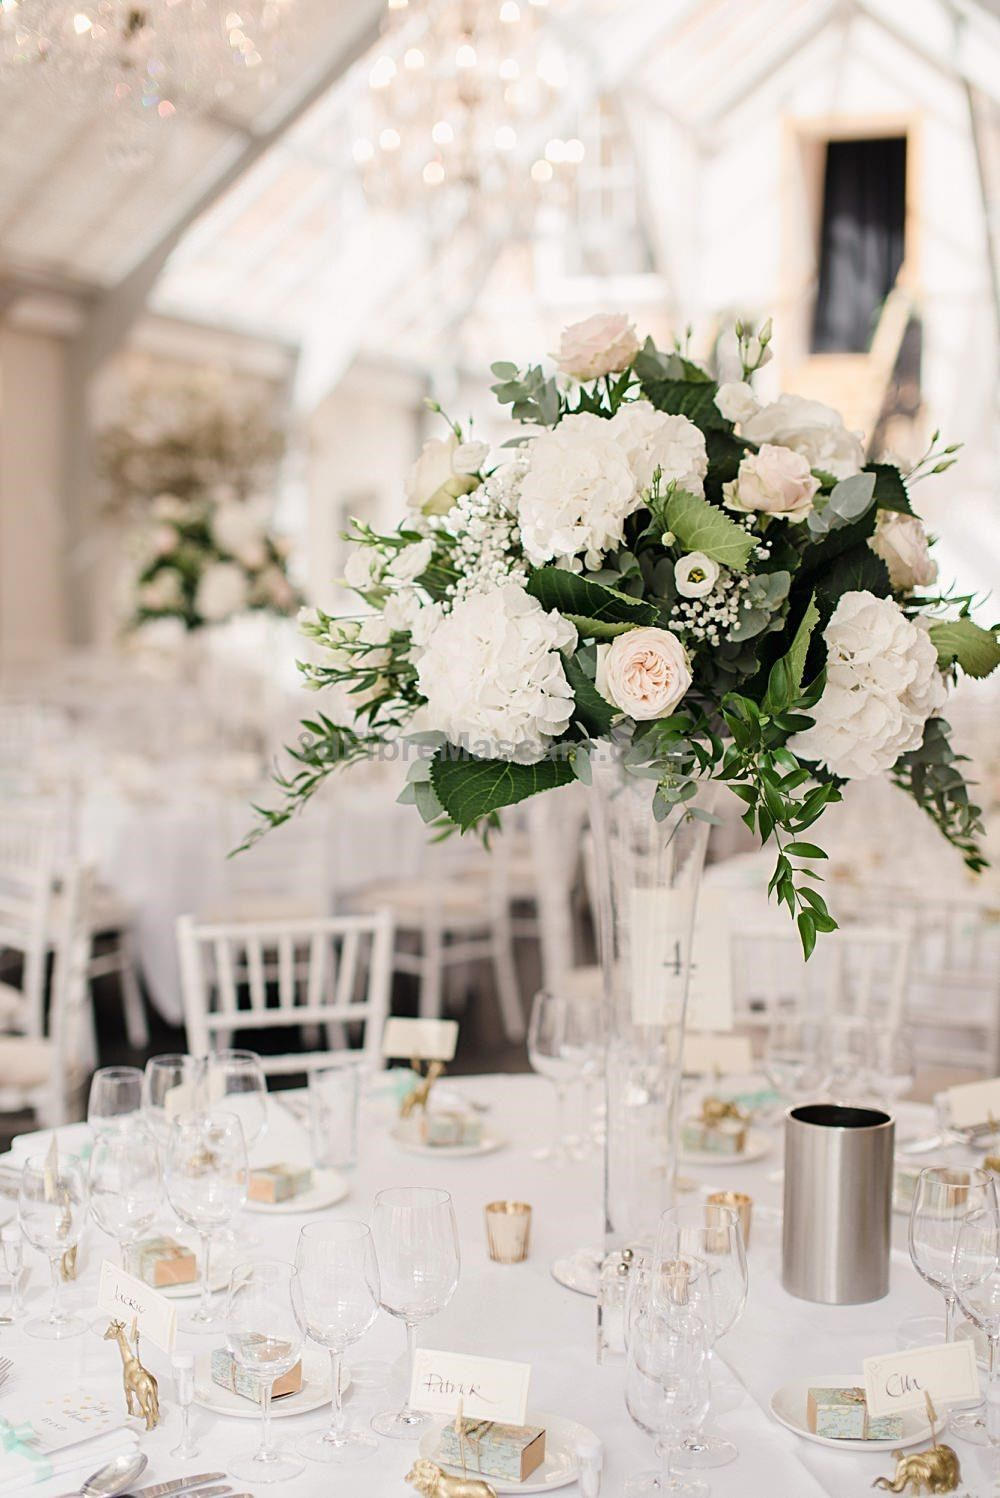 Tall bride wedding dress  Tall White Flower Centrepieces  Classic Wedding at Botleys Mansion